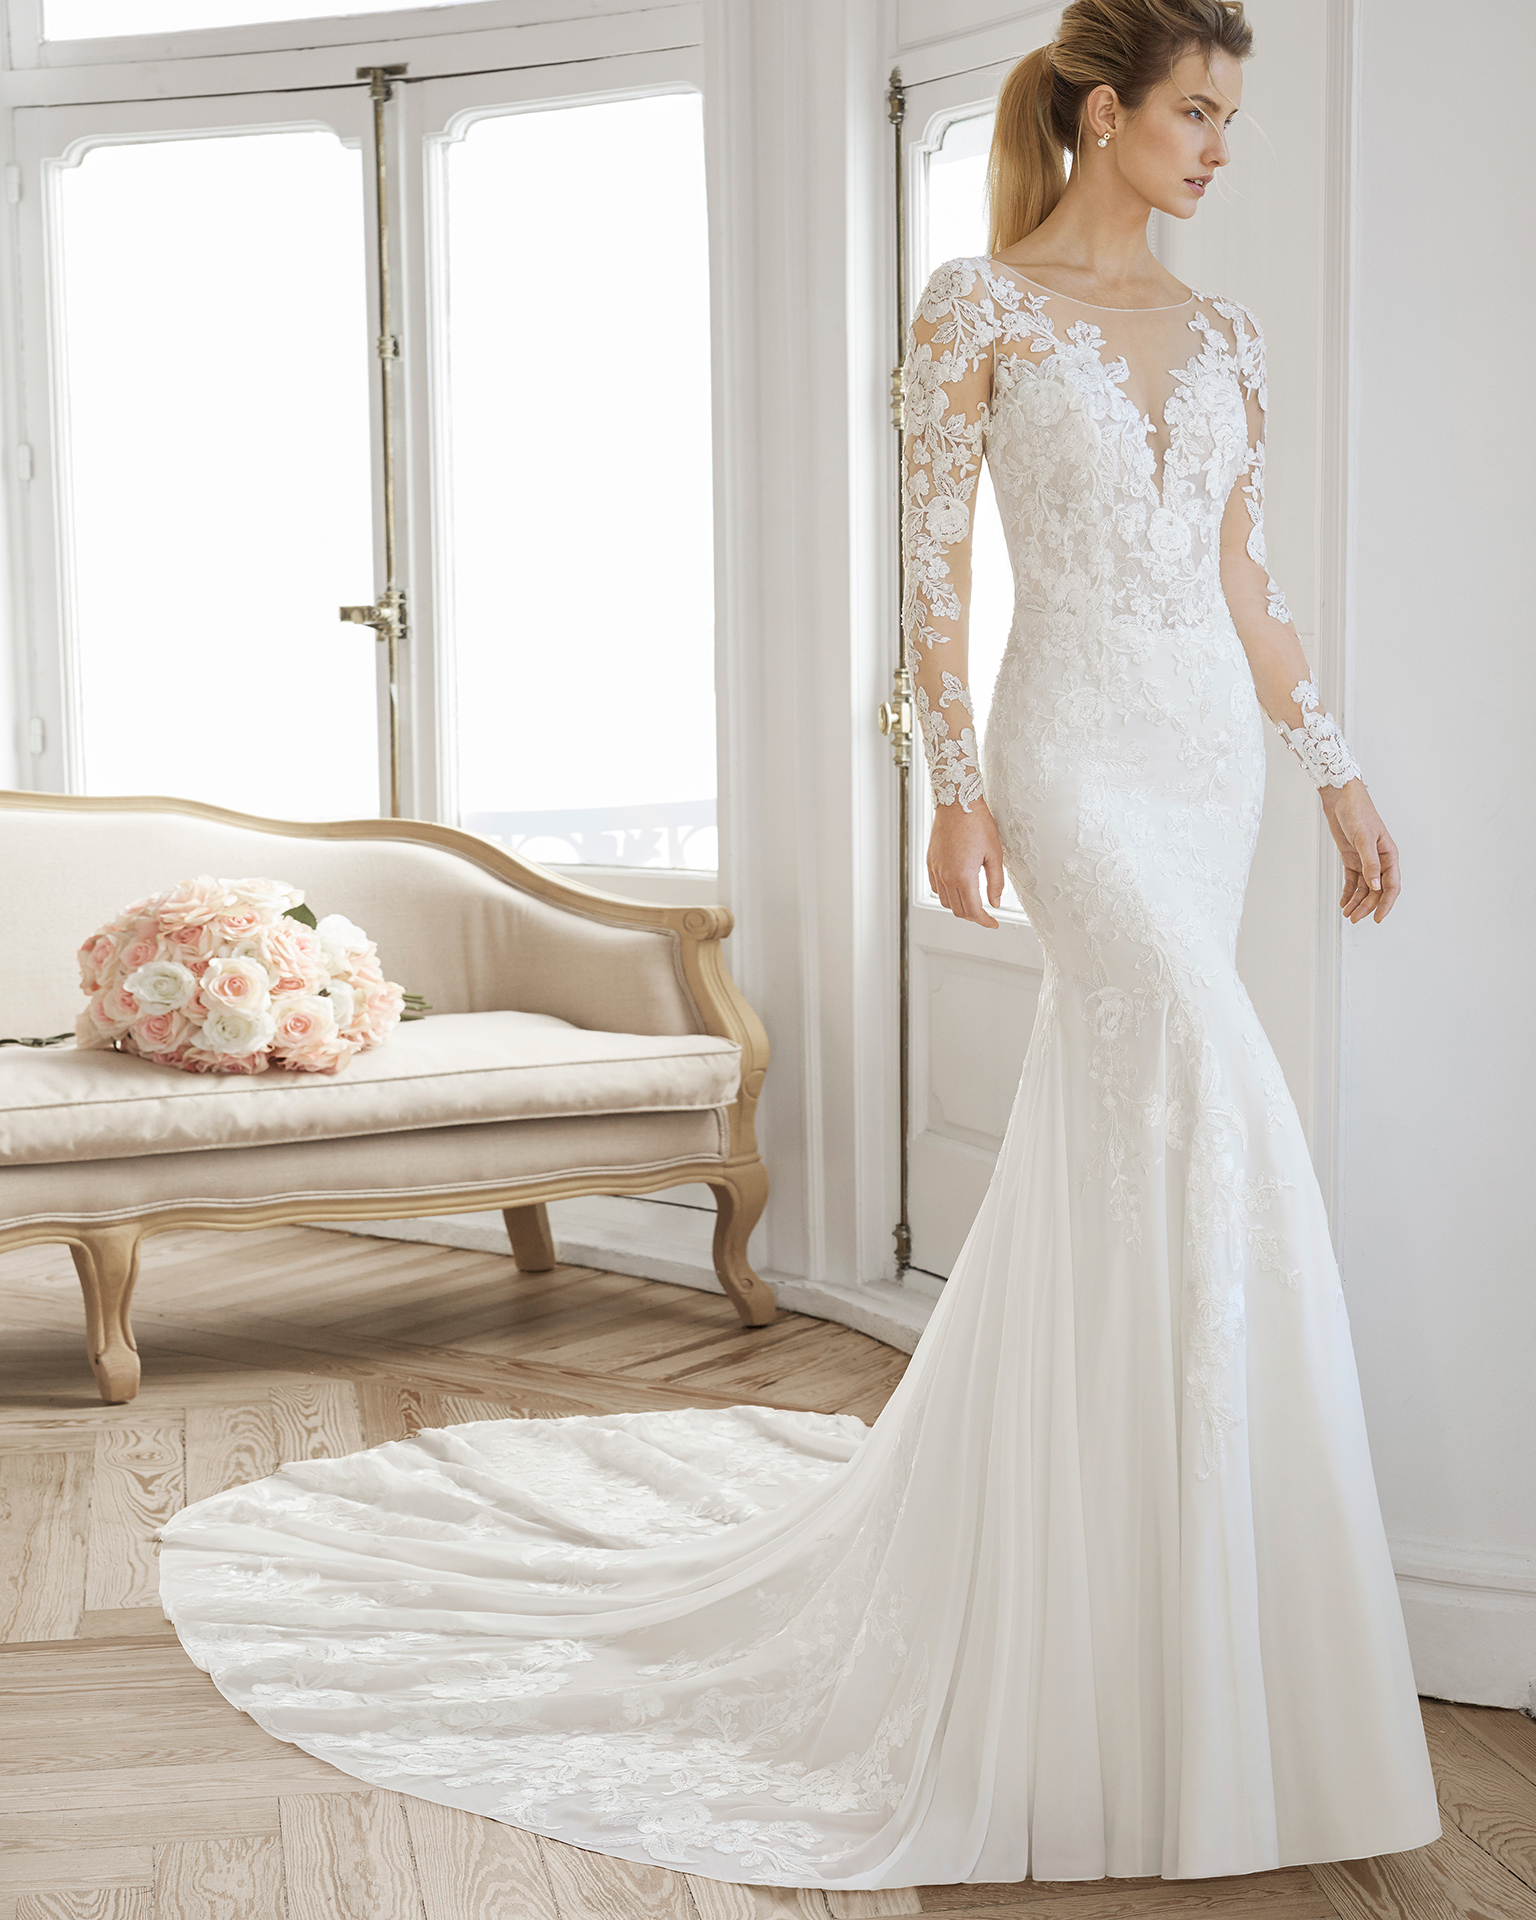 Mermaid-style wedding dress in crepe Georgette and beaded lace. Illusion neckline and long sleeves. Available in natural. 2019 AIRE BARCELONA Collection.